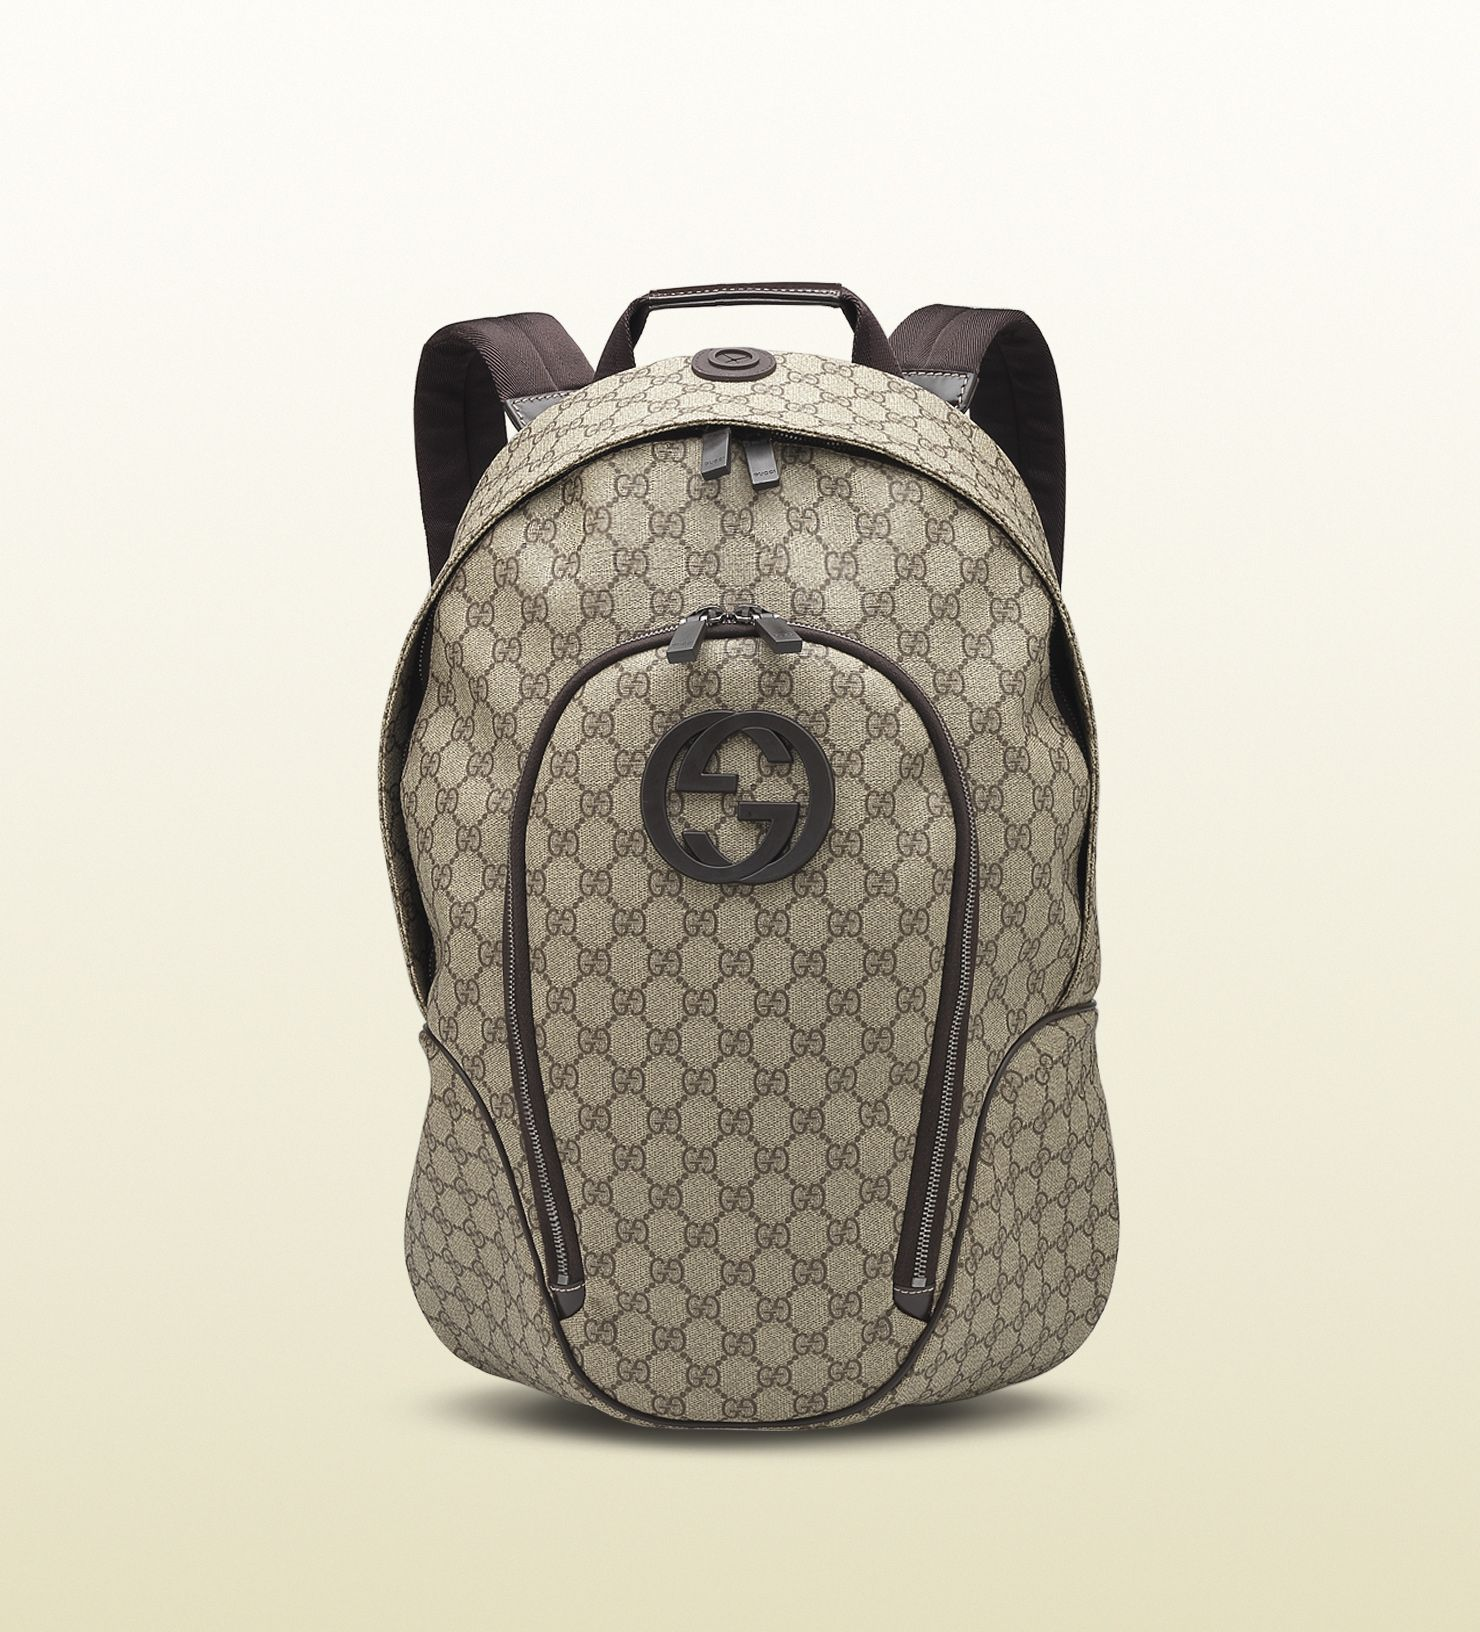 5998cfdf8995 GG supreme canvas interlocking G backpack. GG supreme canvas interlocking G  backpack Luggage Bags